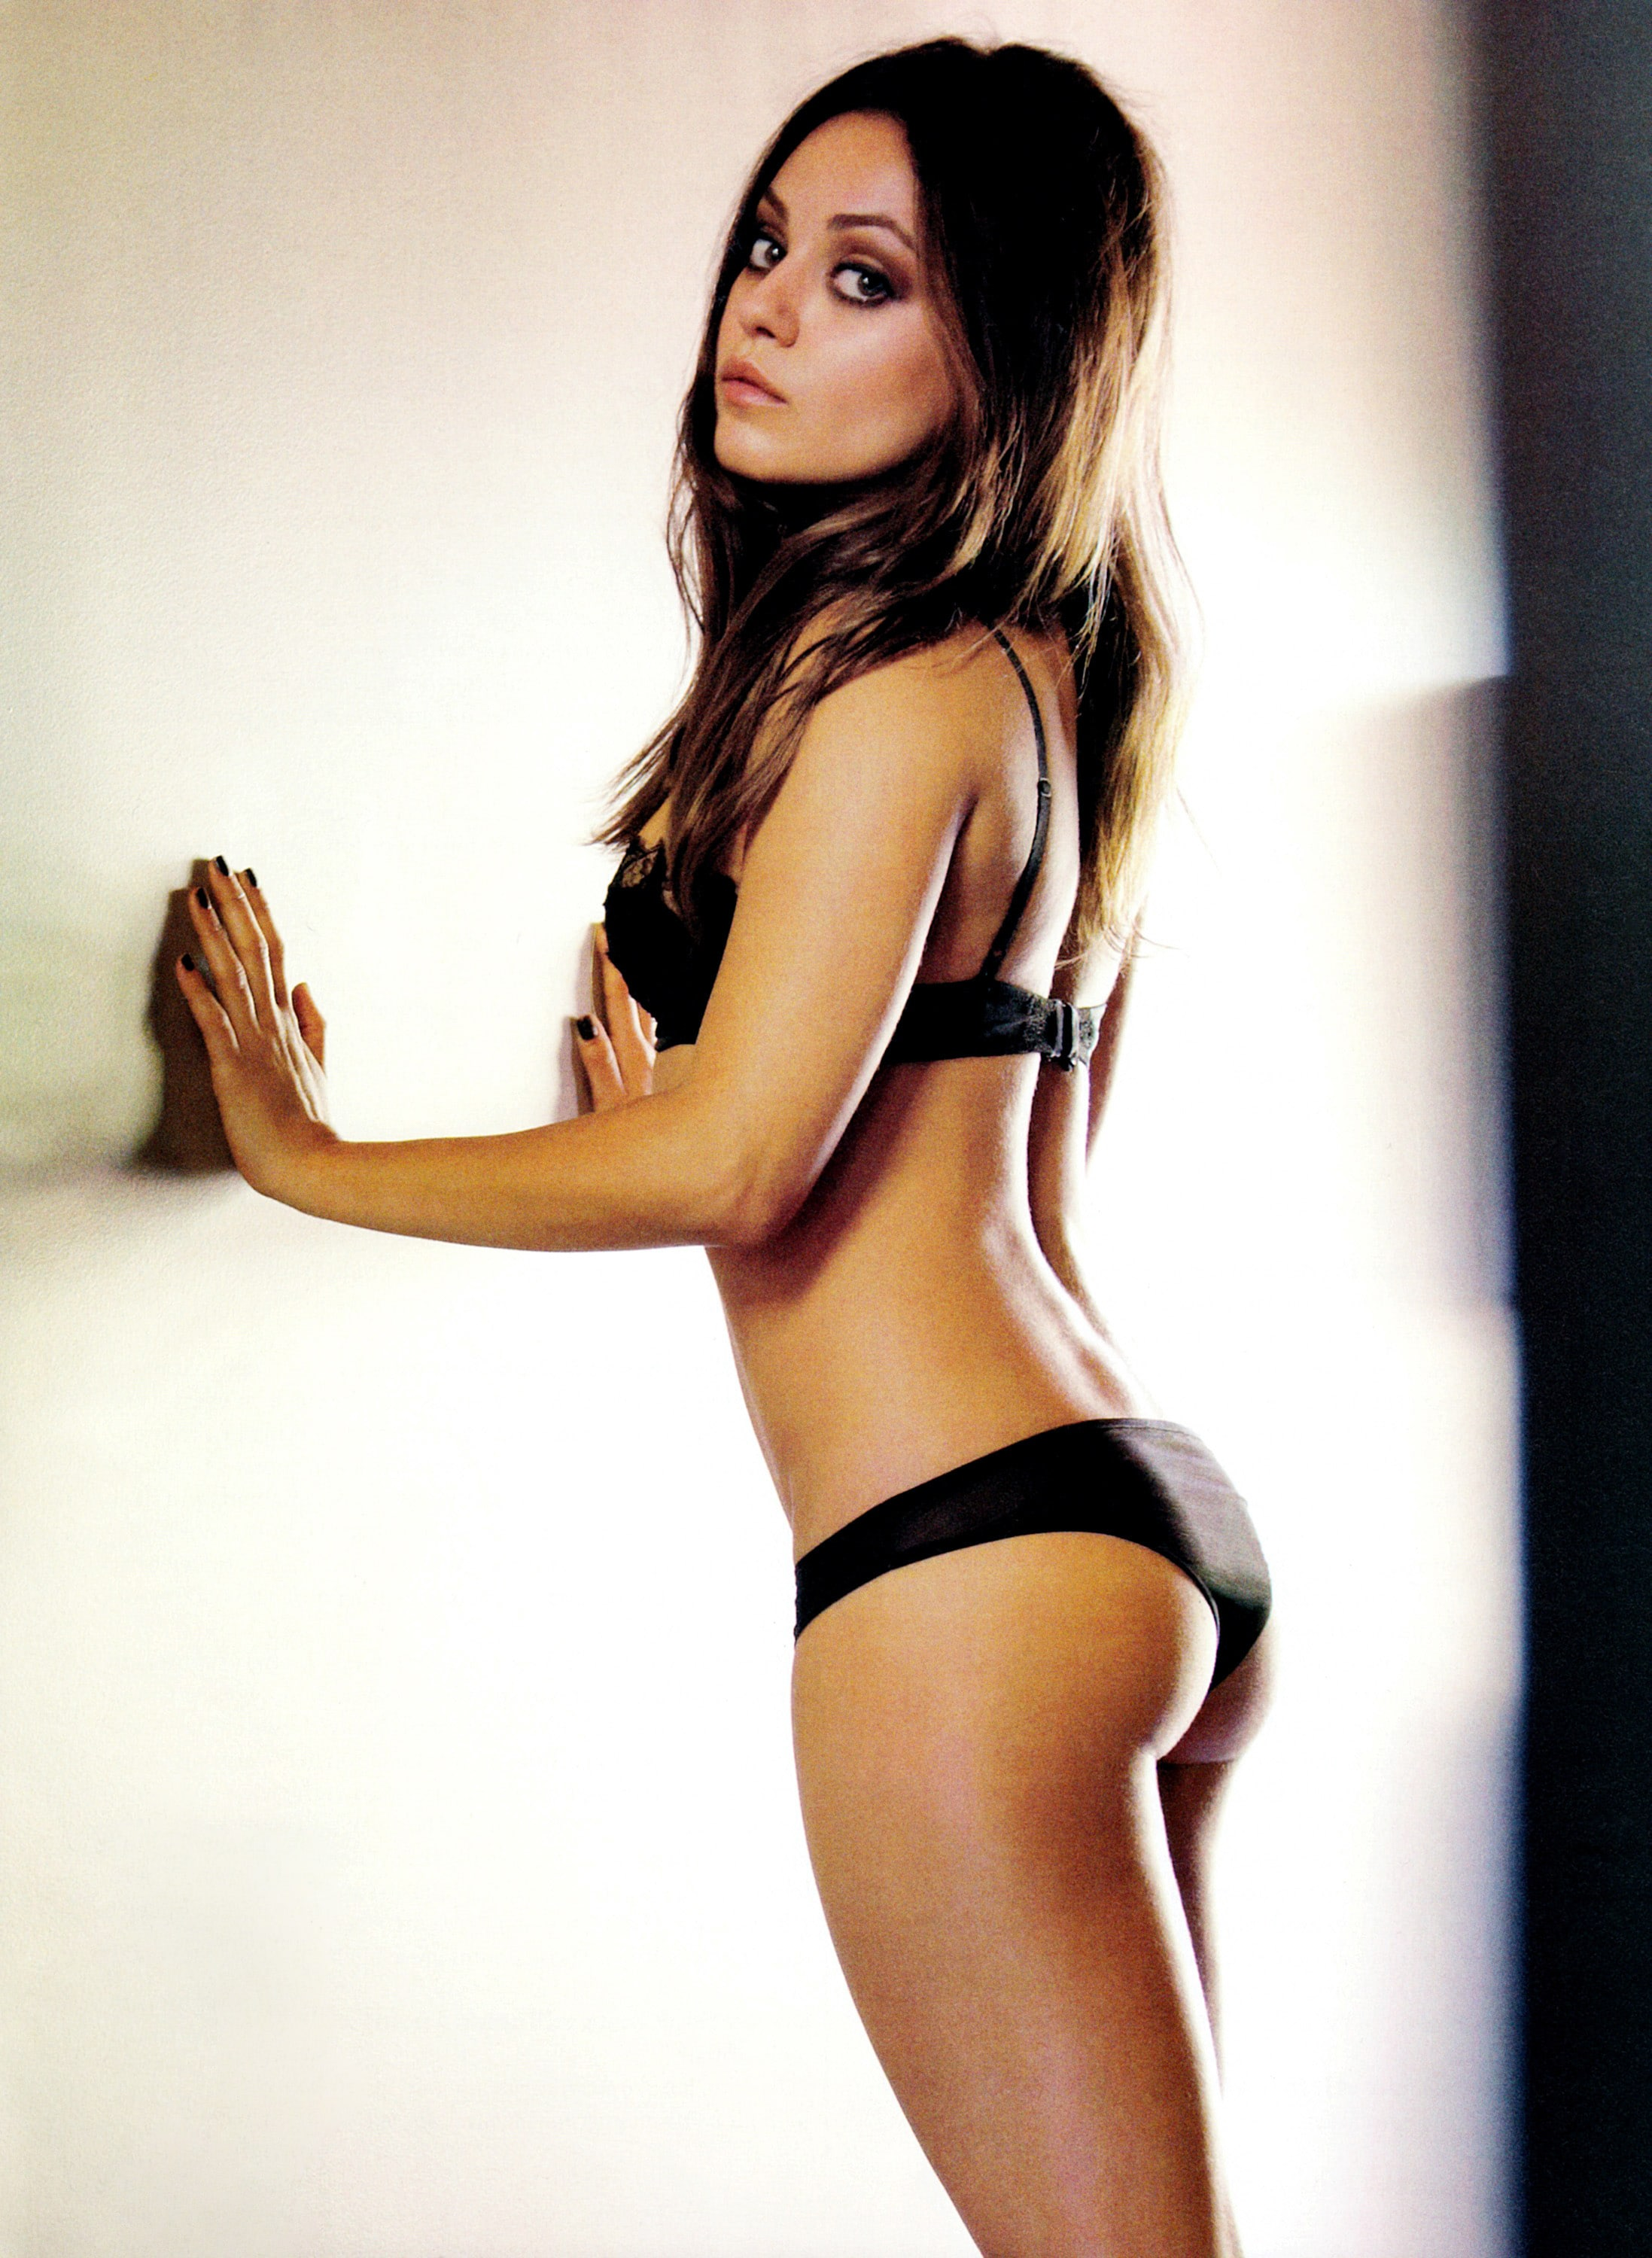 hot pic of mila with black lingerie on